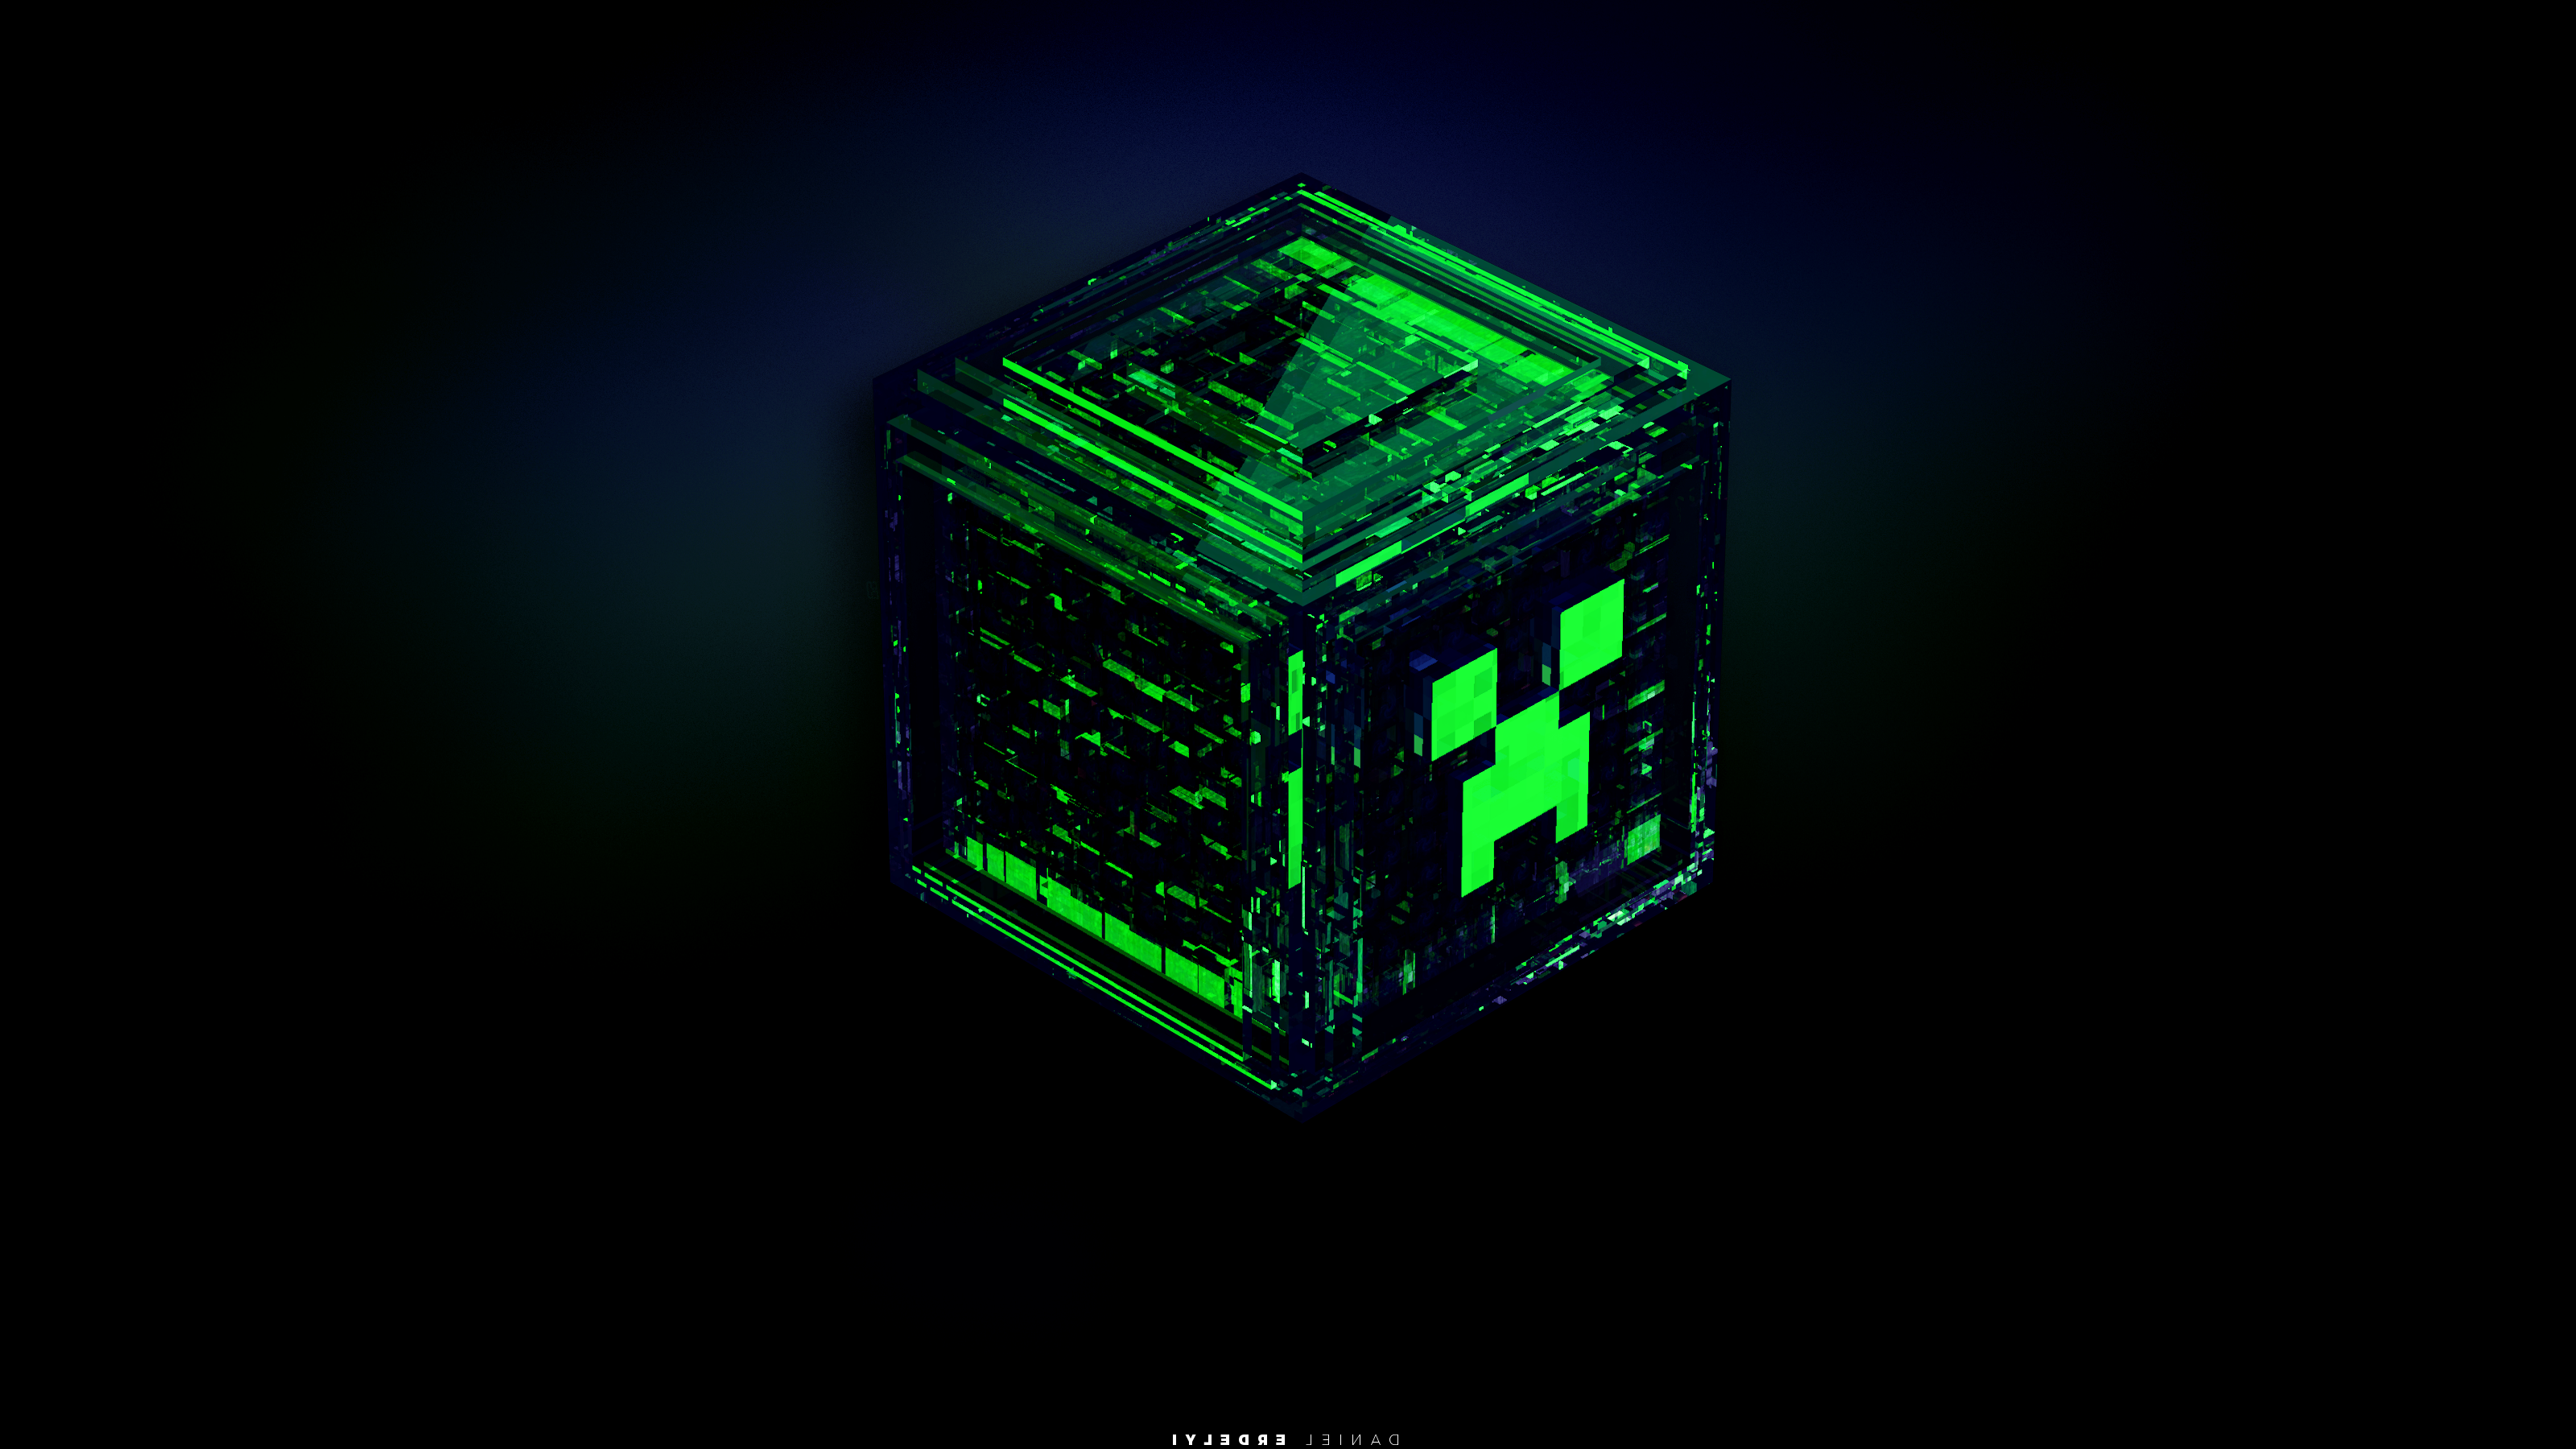 Beautiful Wallpaper Minecraft Ipad Mini - 4G0aRL  Collection_43223.png